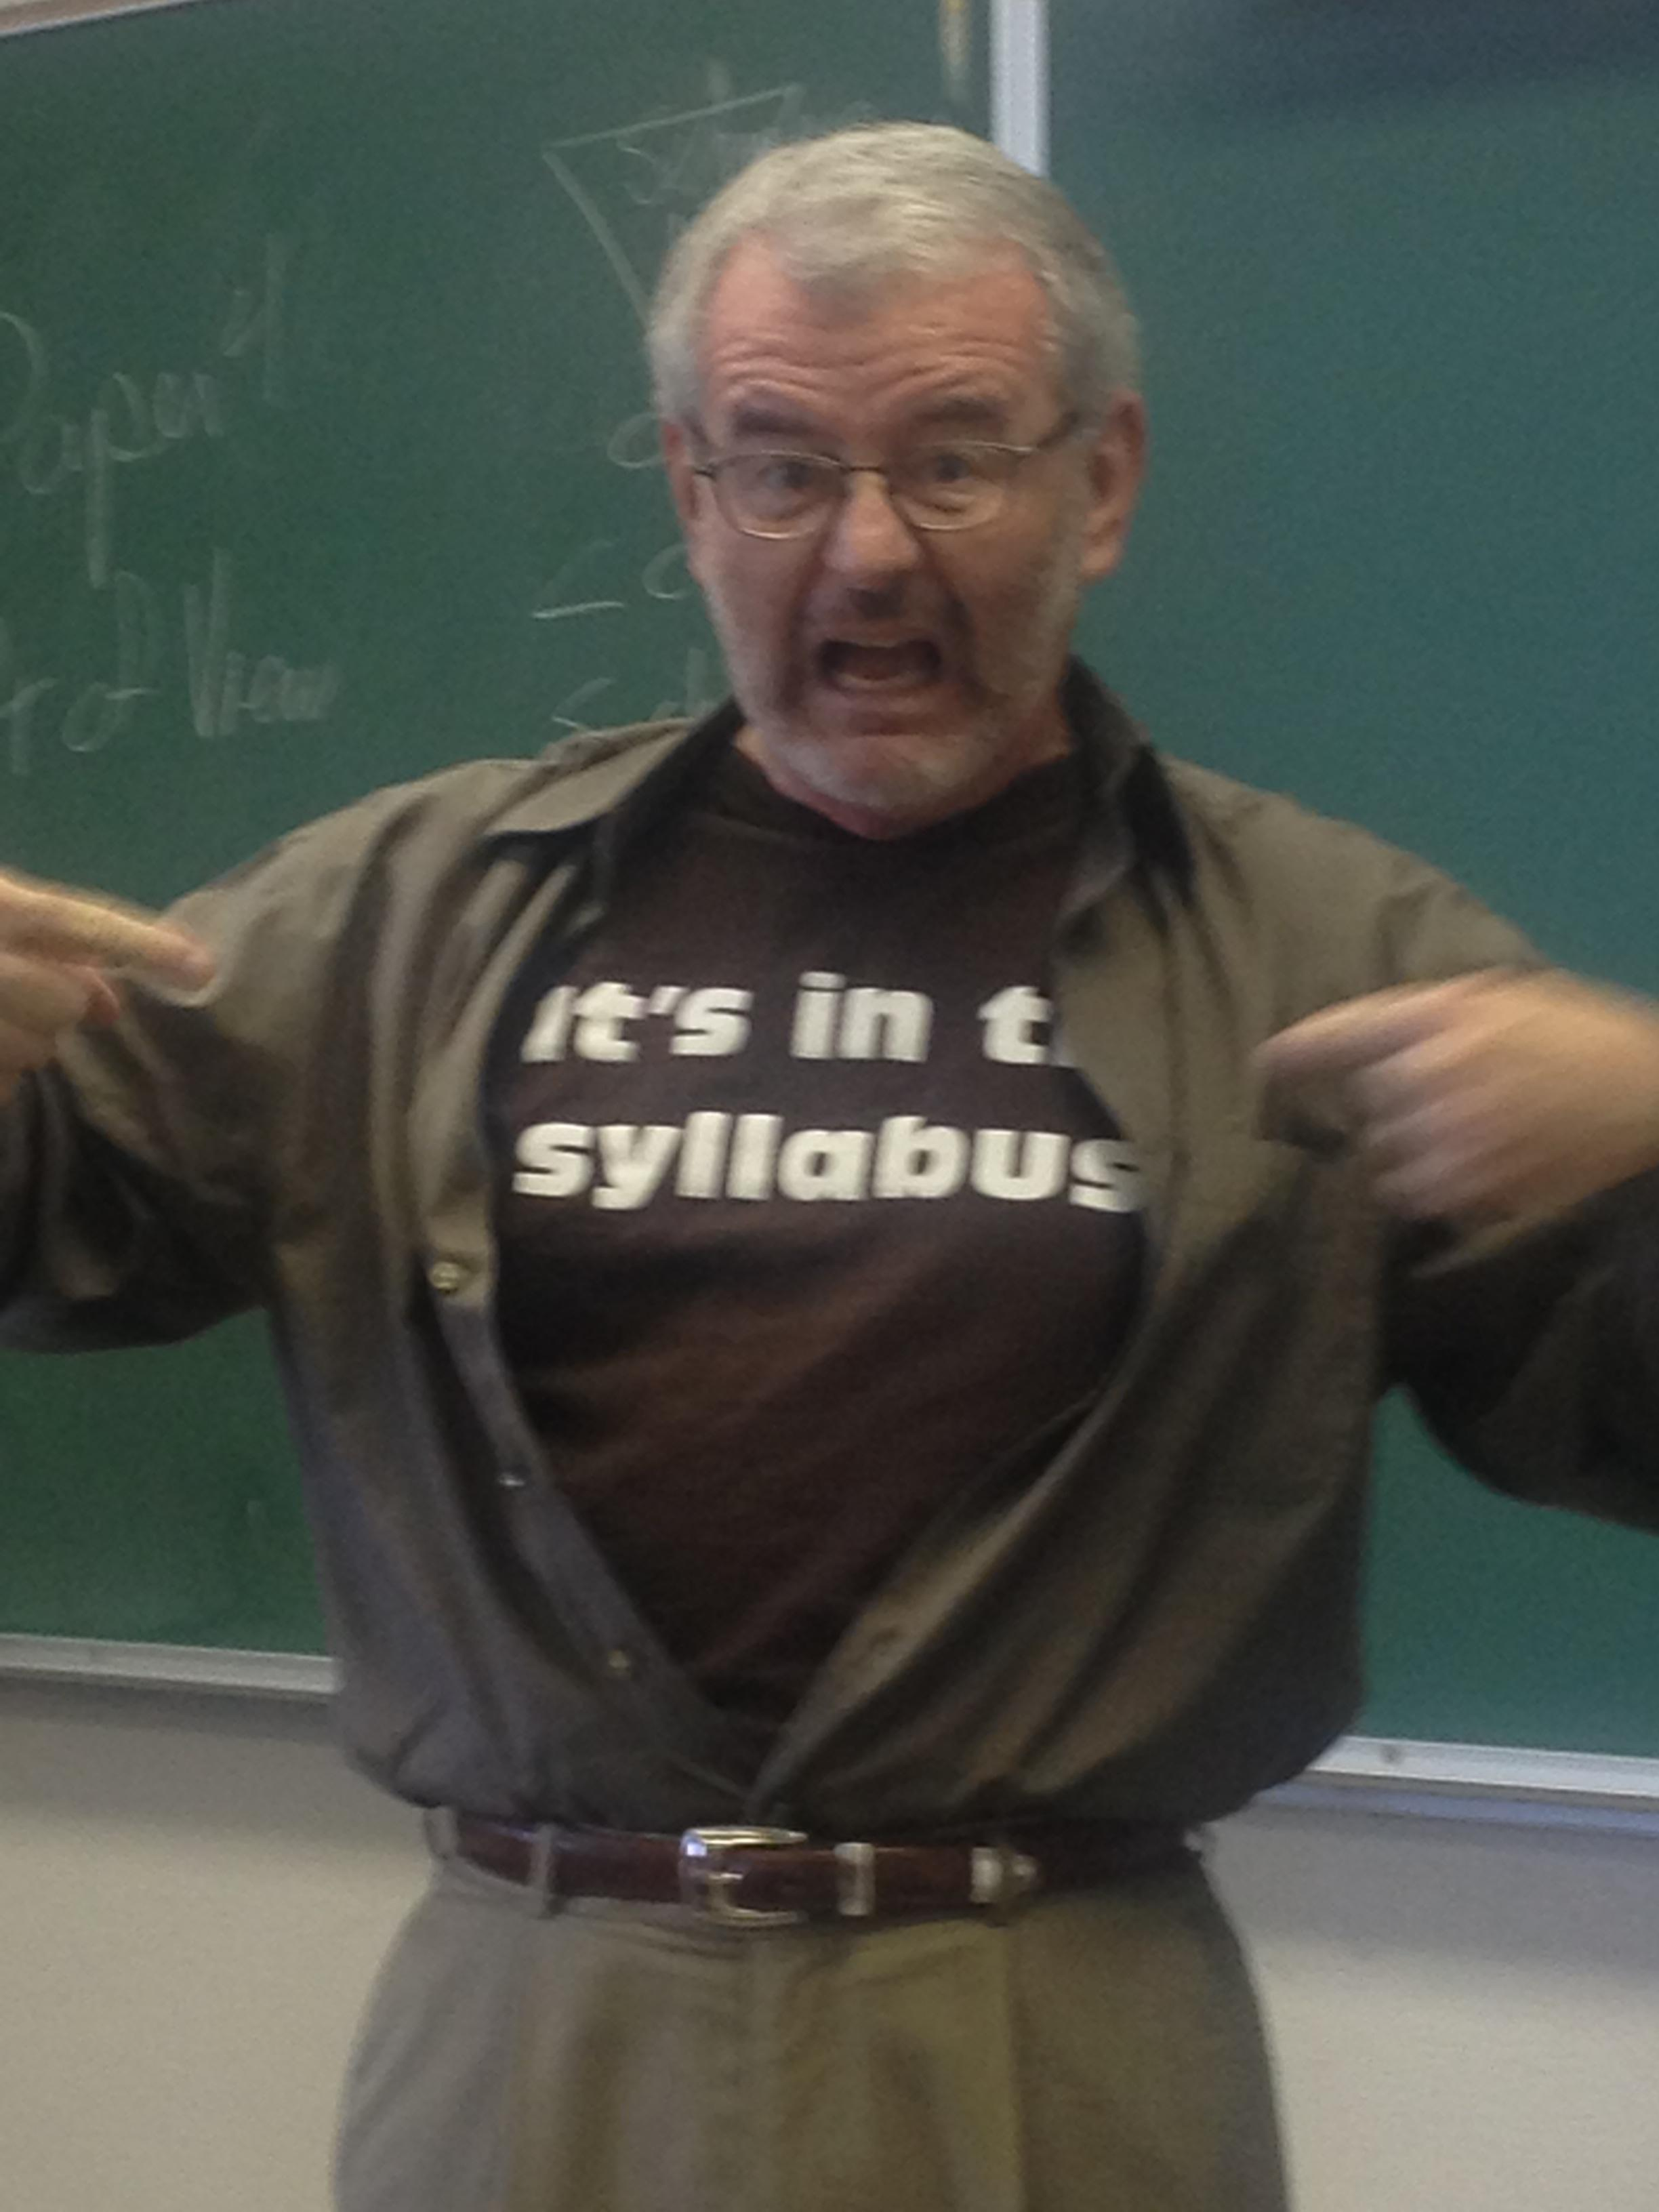 6fedd5d9 The t-shirt many professors would enjoy wearing